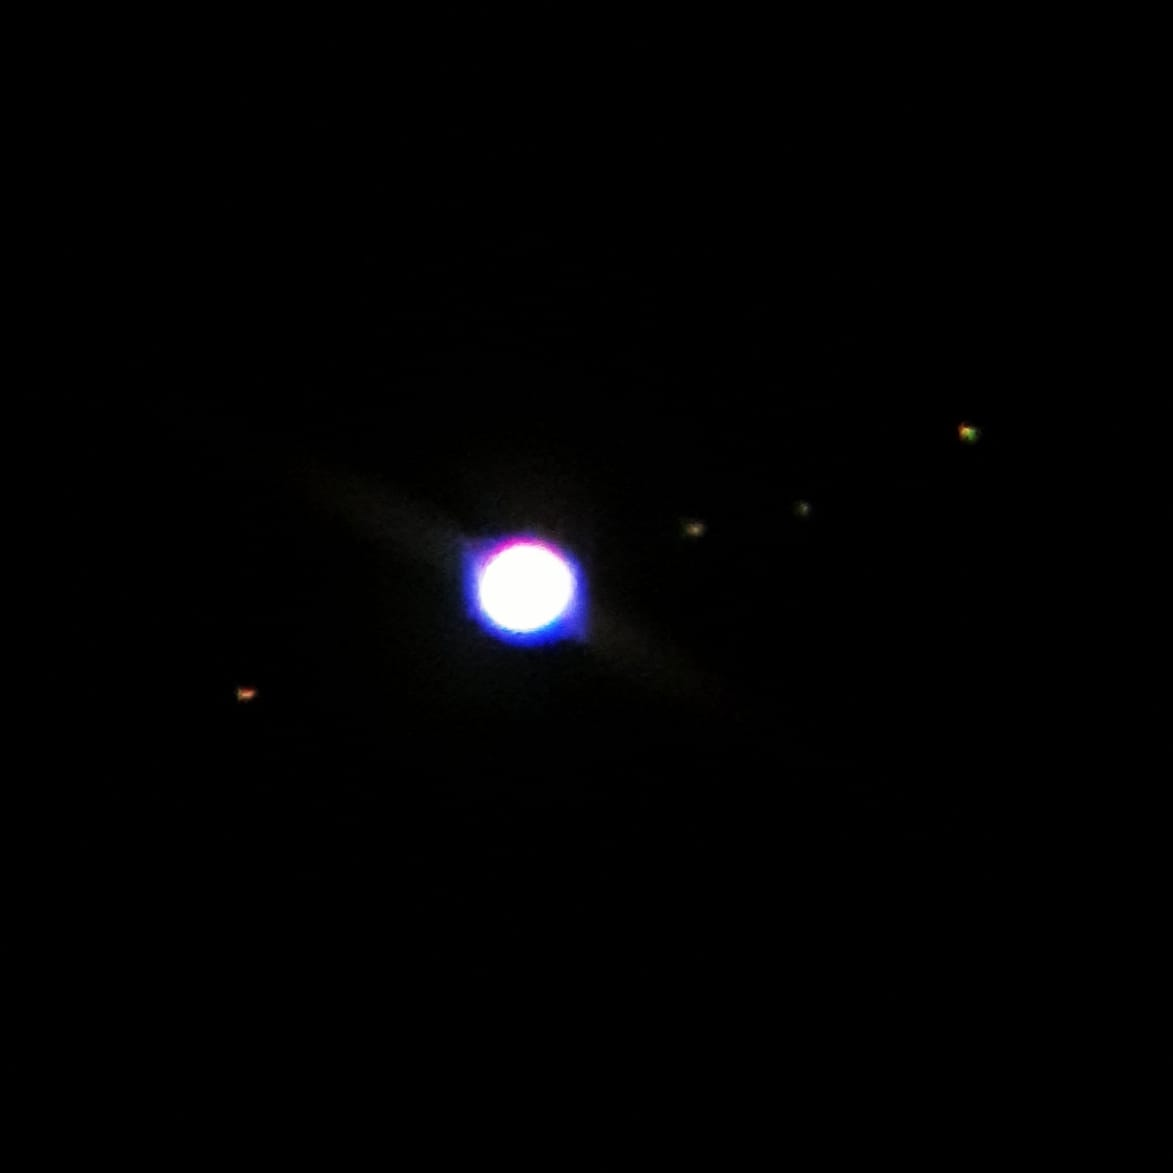 Have been obsessively staring at Jupiter and its four largest moons through my telescope most clear nights since May, the view has been clear and glorious but this is the best shot my phone can get. Next purchase stop camera me thinks #jupiter #skywatcher #telescope #Geek https://t.co/p8im7ySLKA